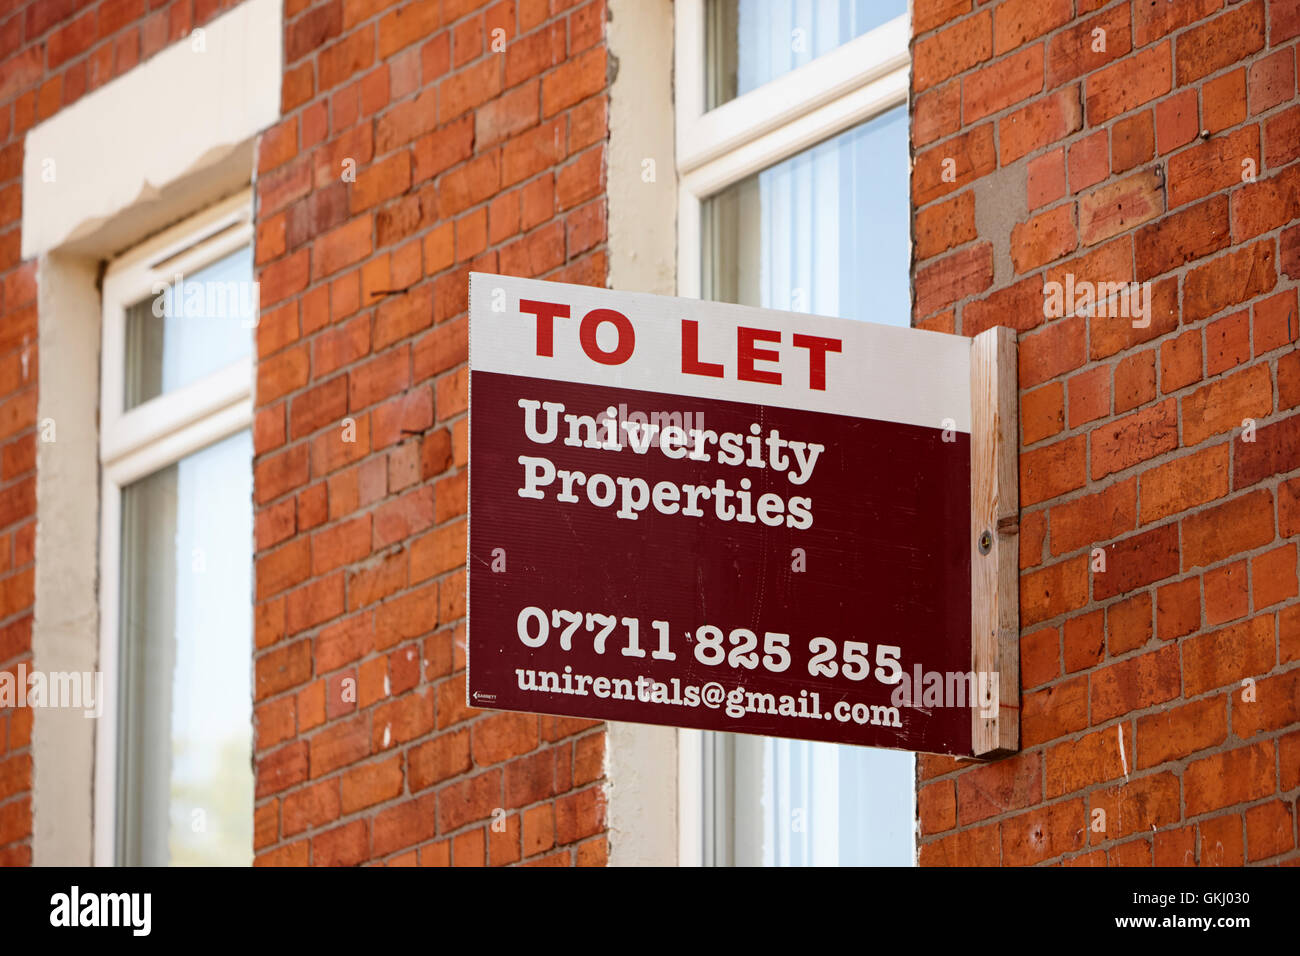 to let signs outside property in the holylands university area of belfast - Stock Image